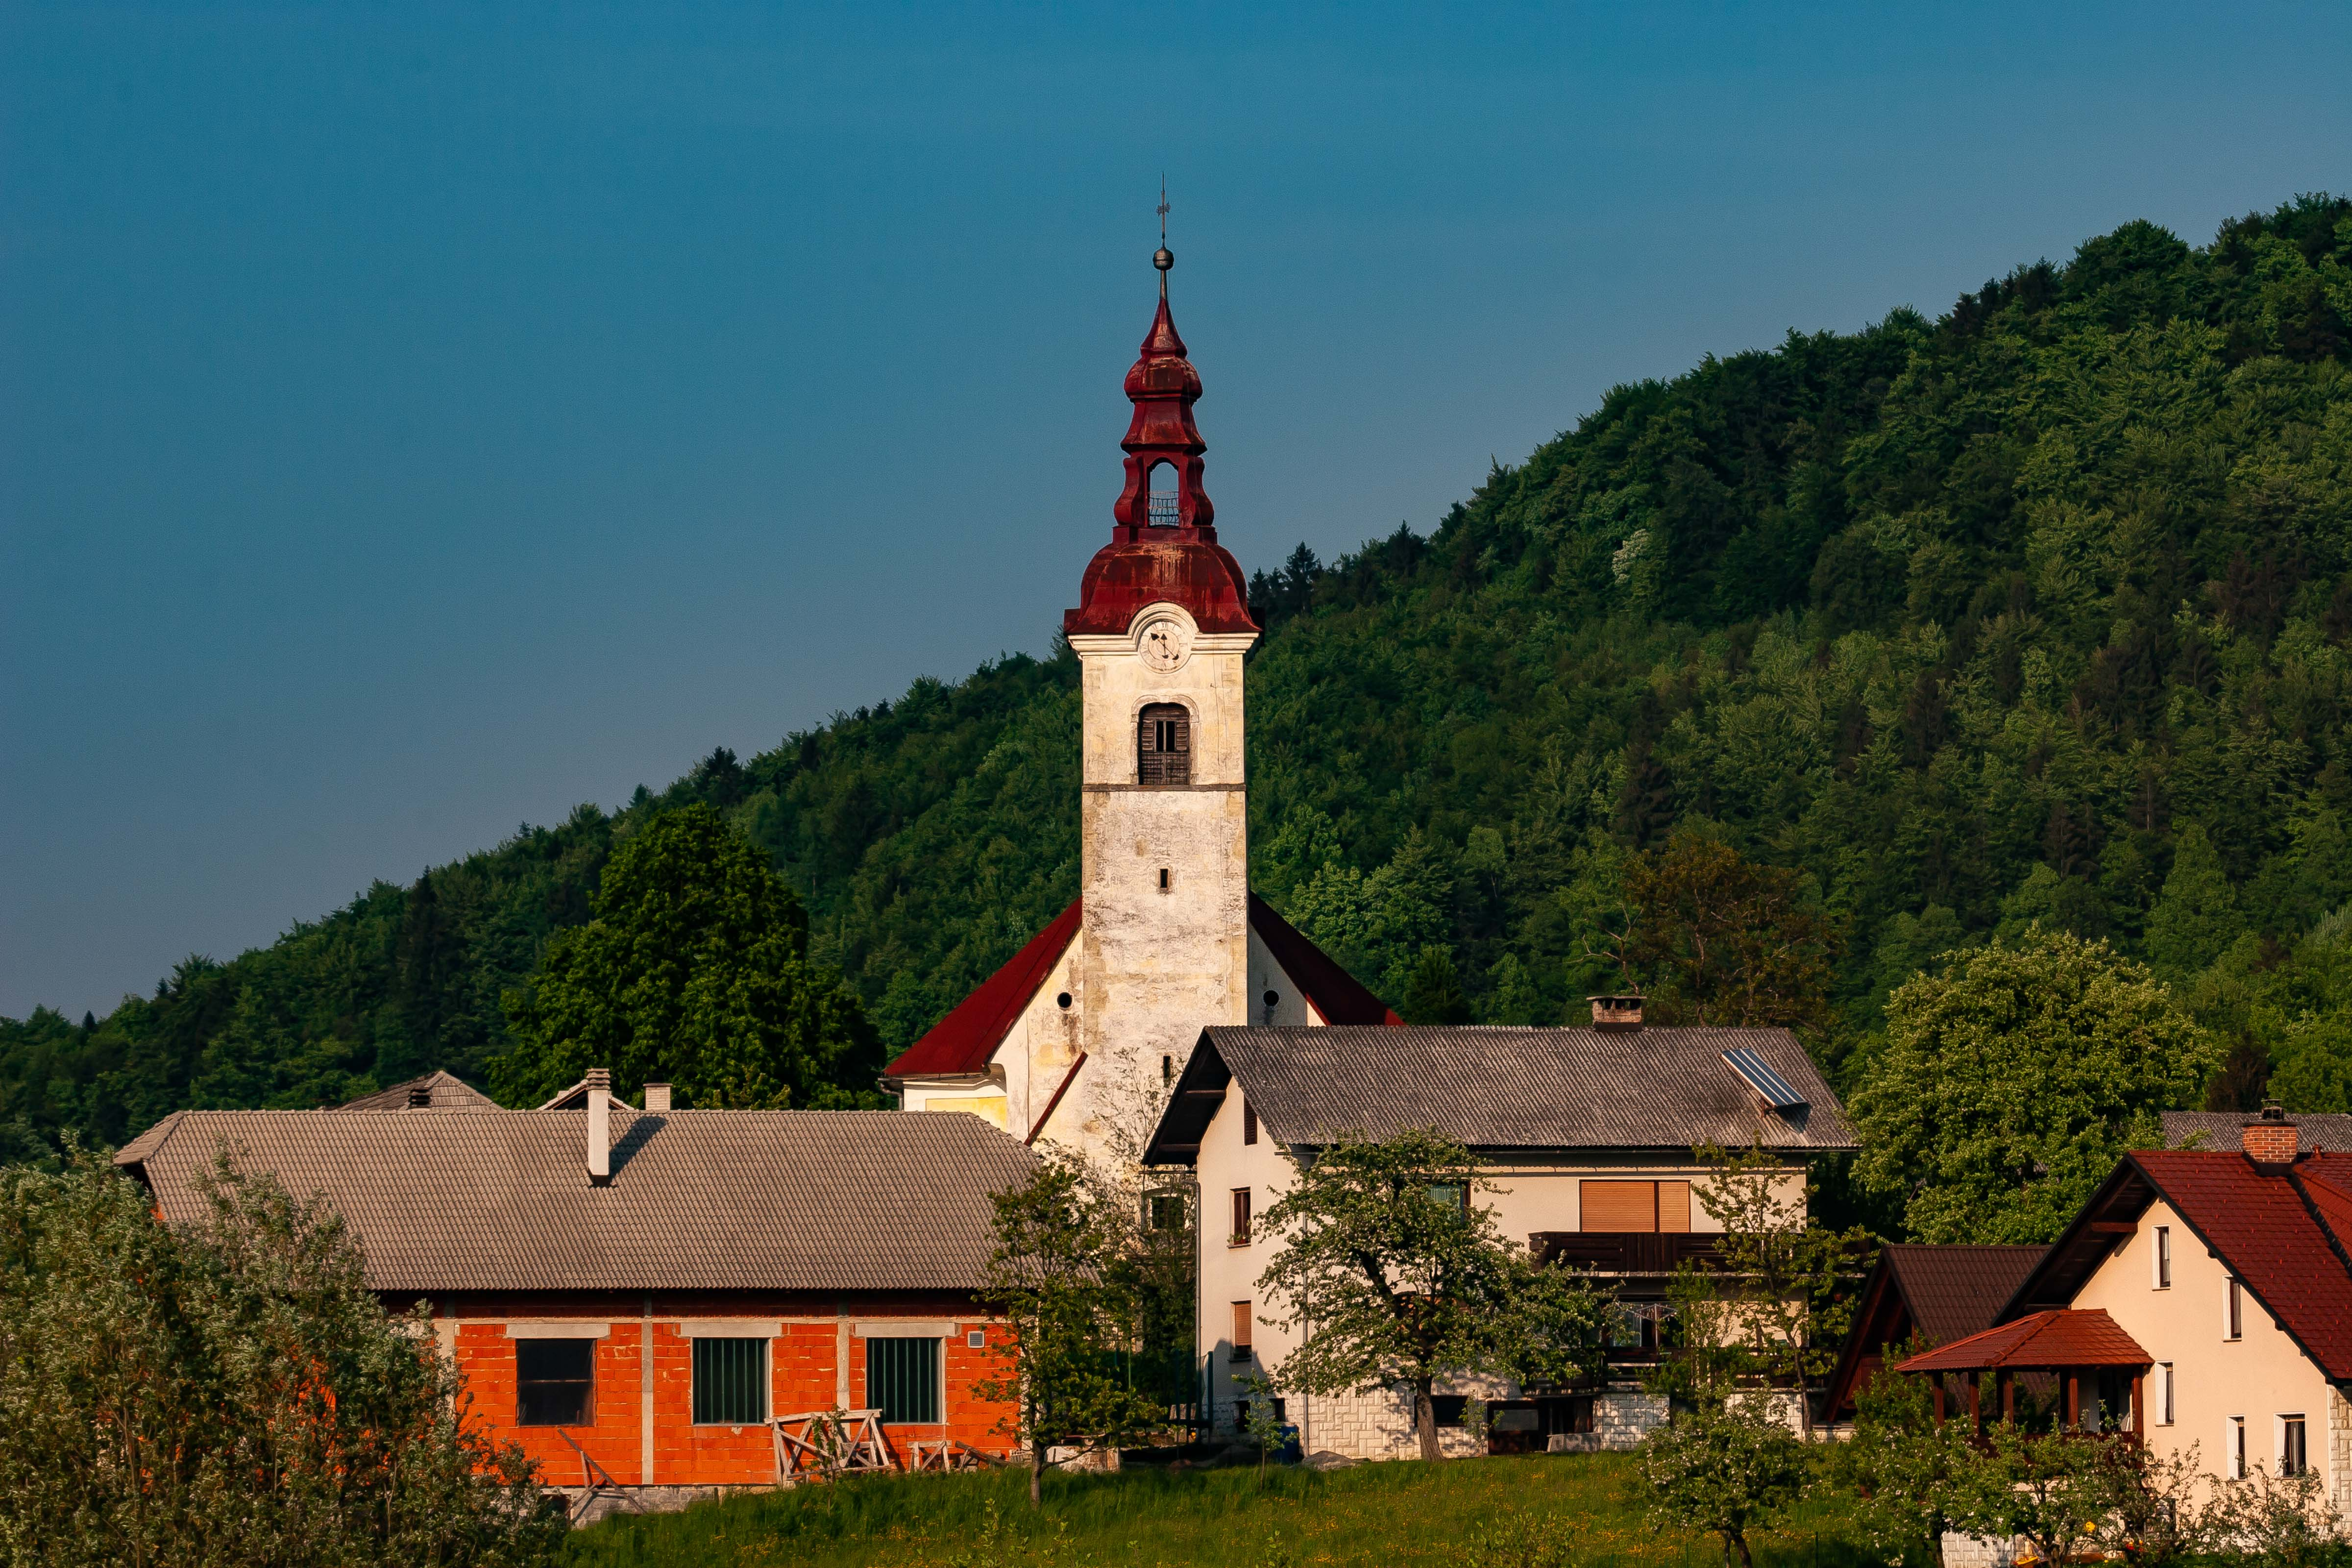 Slovenia, Moravce Prov, Village And Church, 2006, IMG 6159